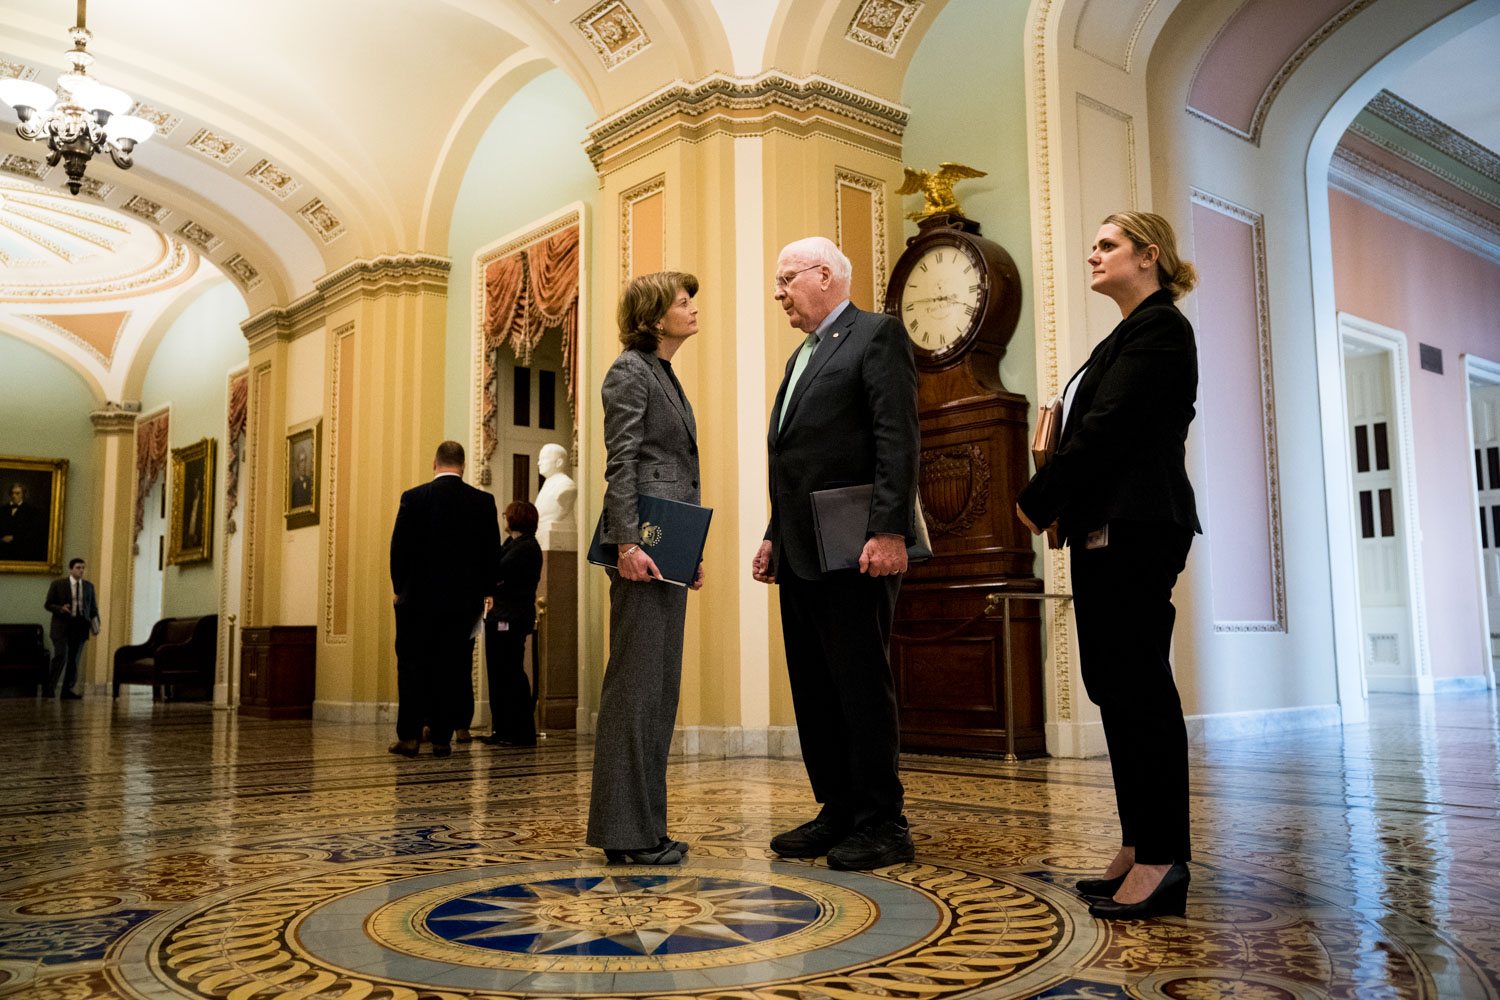 Senator Lisa Murkowski (R-AK) and Senator Patrick Leahy (D-VT) confer in the Ohio Clock corridor outside the Senate floor on Capitol Hill in Washington, DC on March 21, 2018. (Erin Schaff for The New York Times)